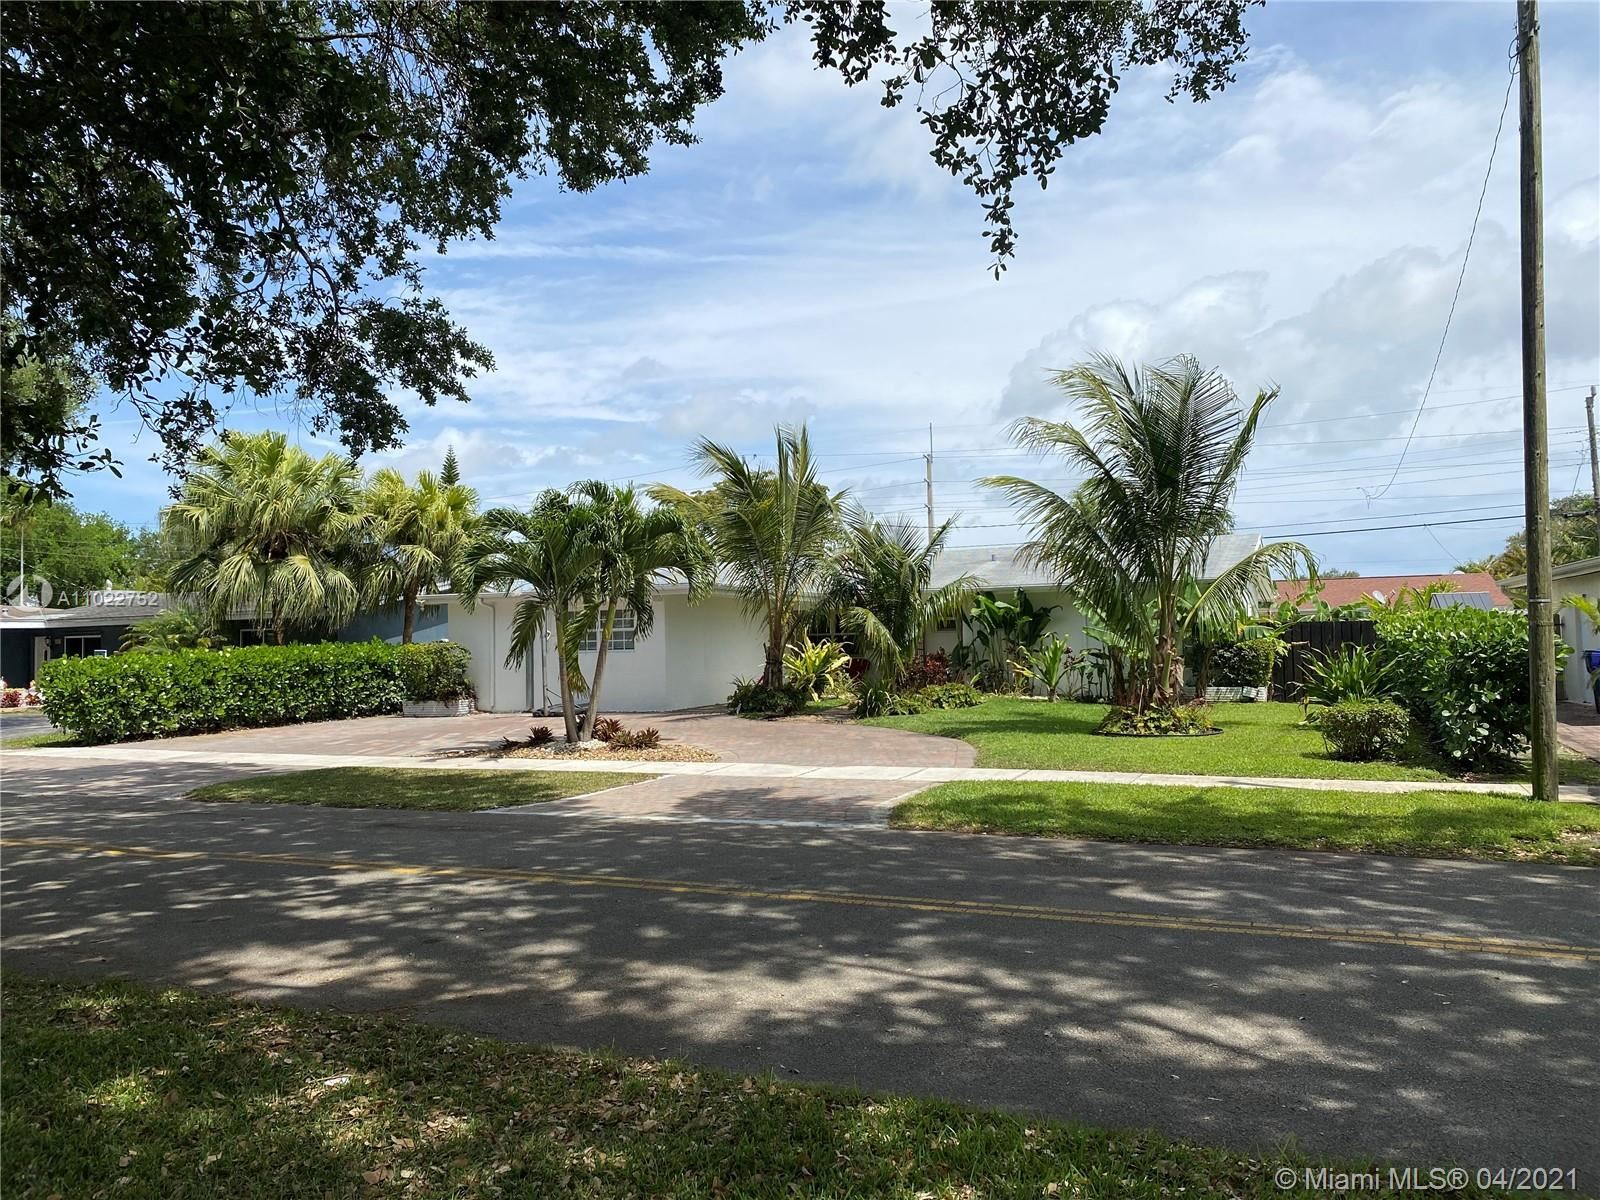 411 S 56th Ter, Hollywood, FL 33023 - #: A11022752